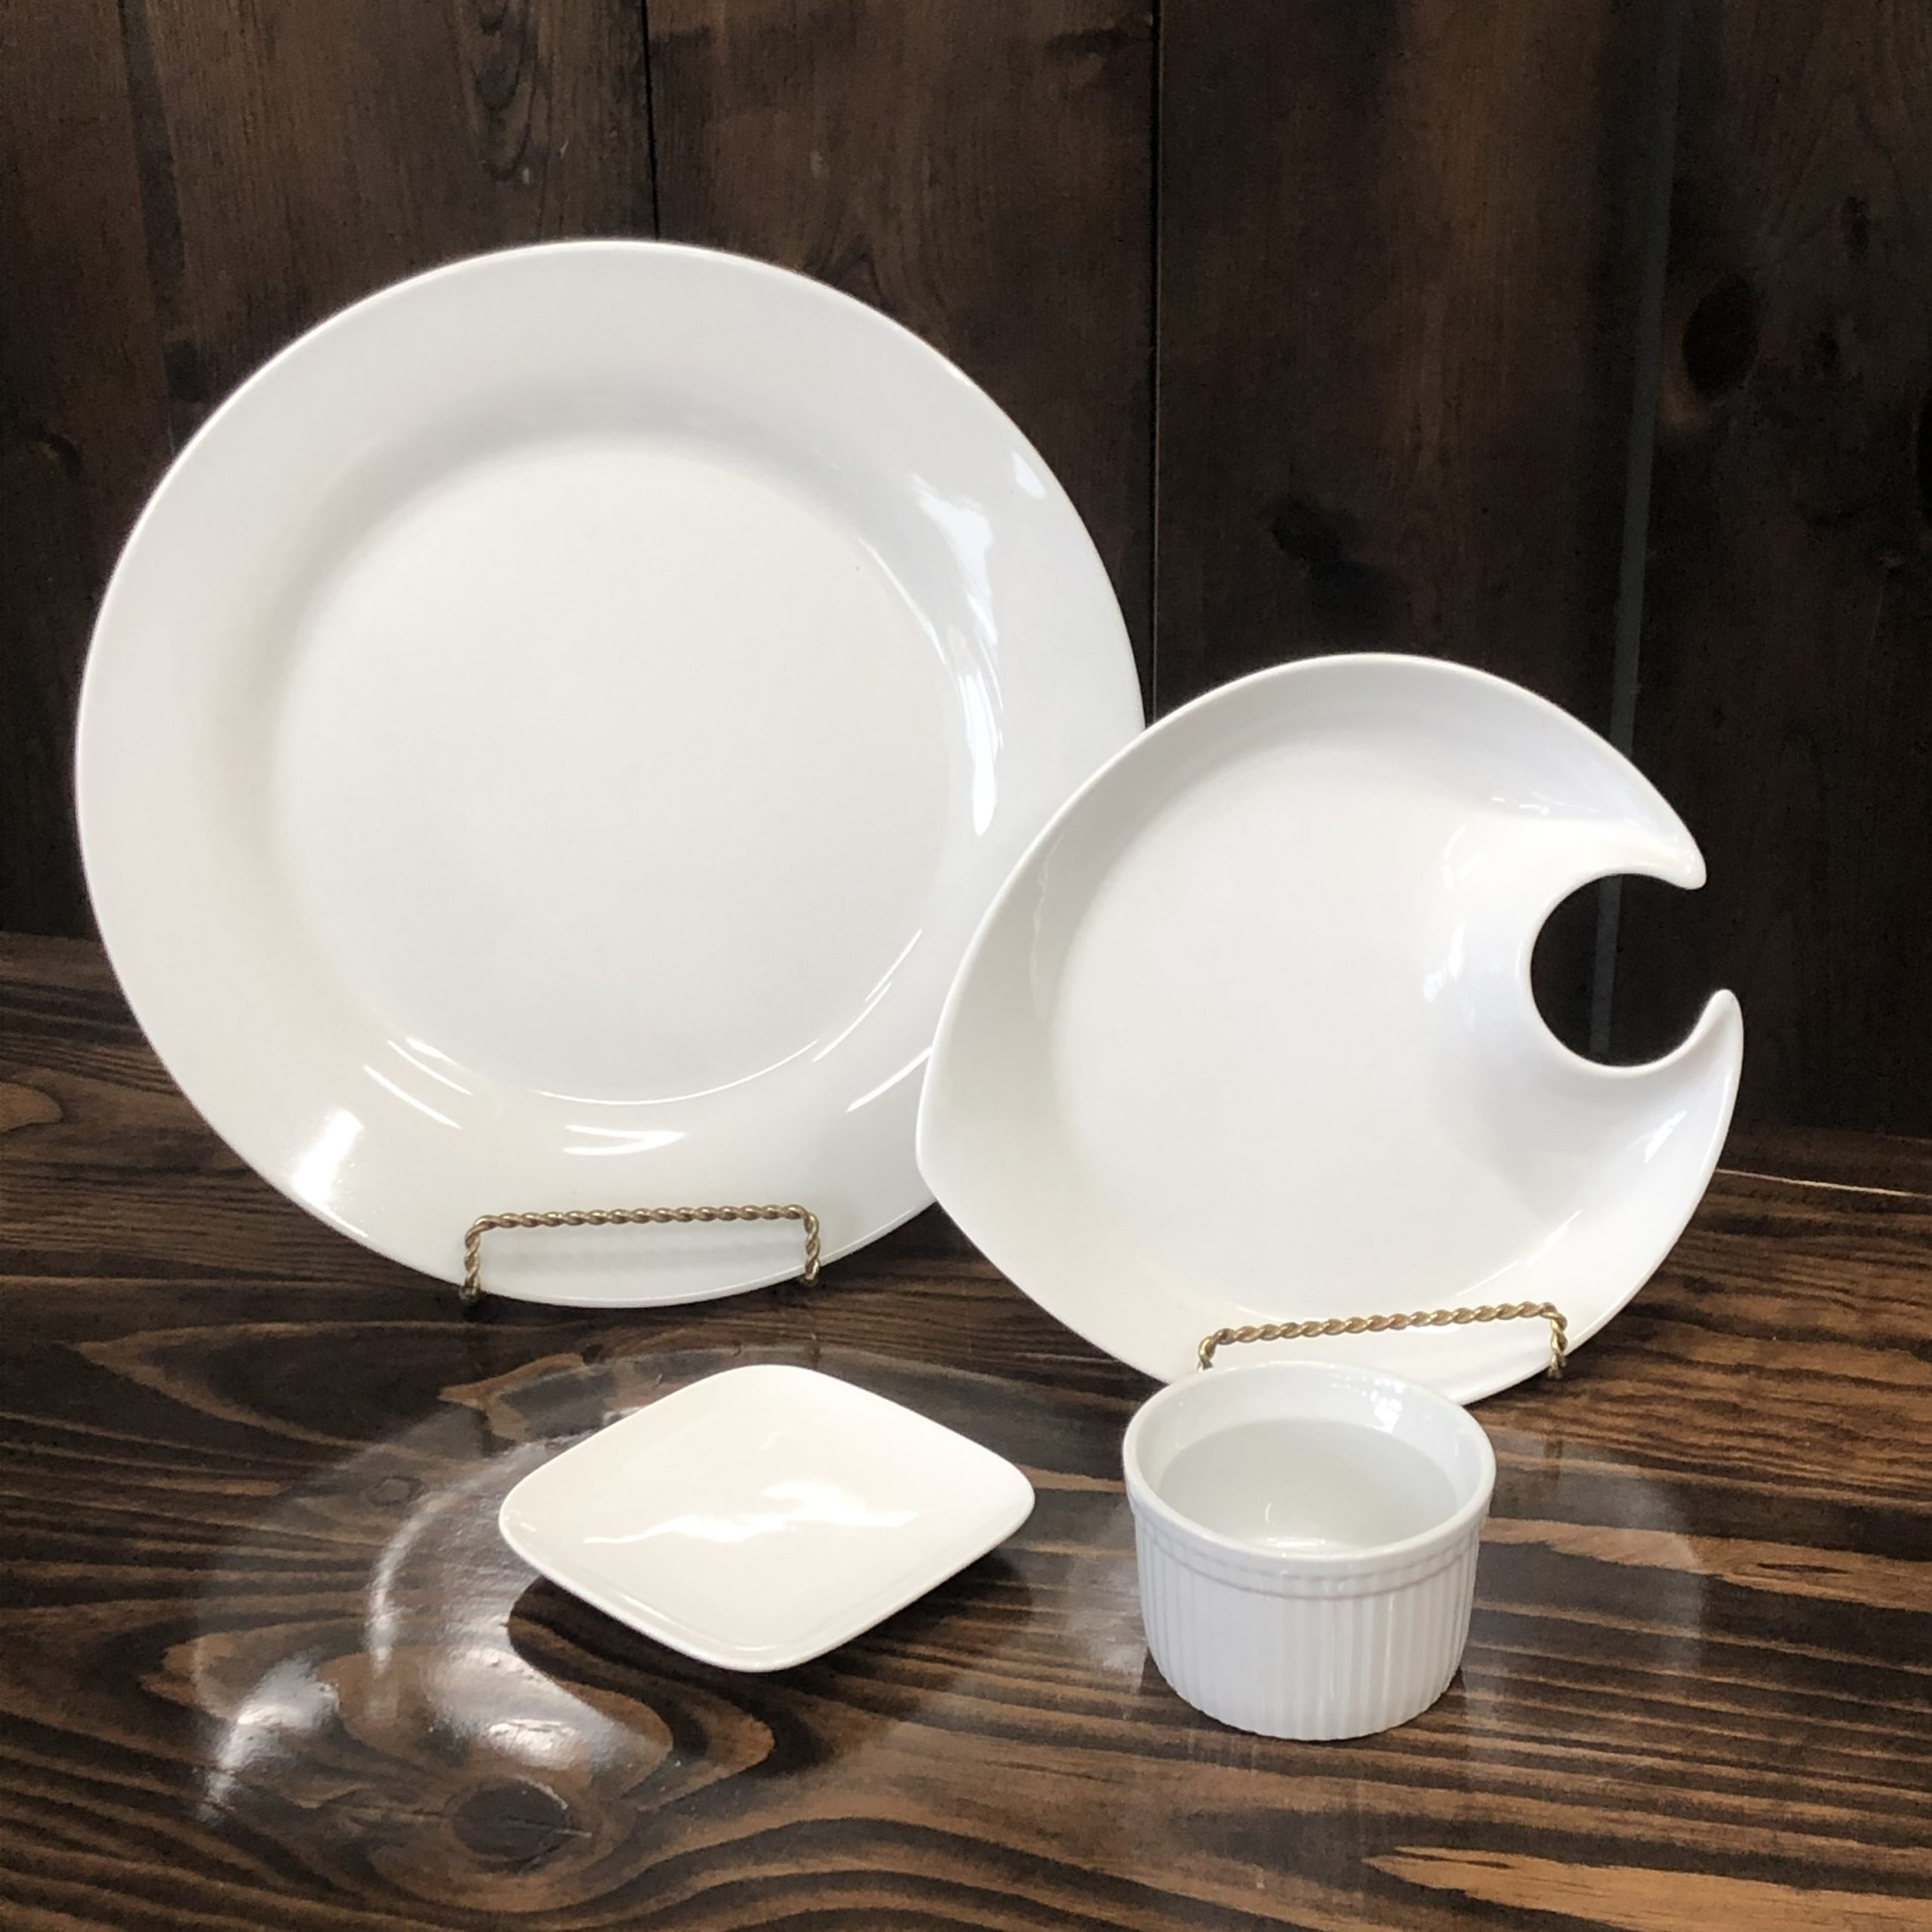 Assorted Dishware & Accessories Image